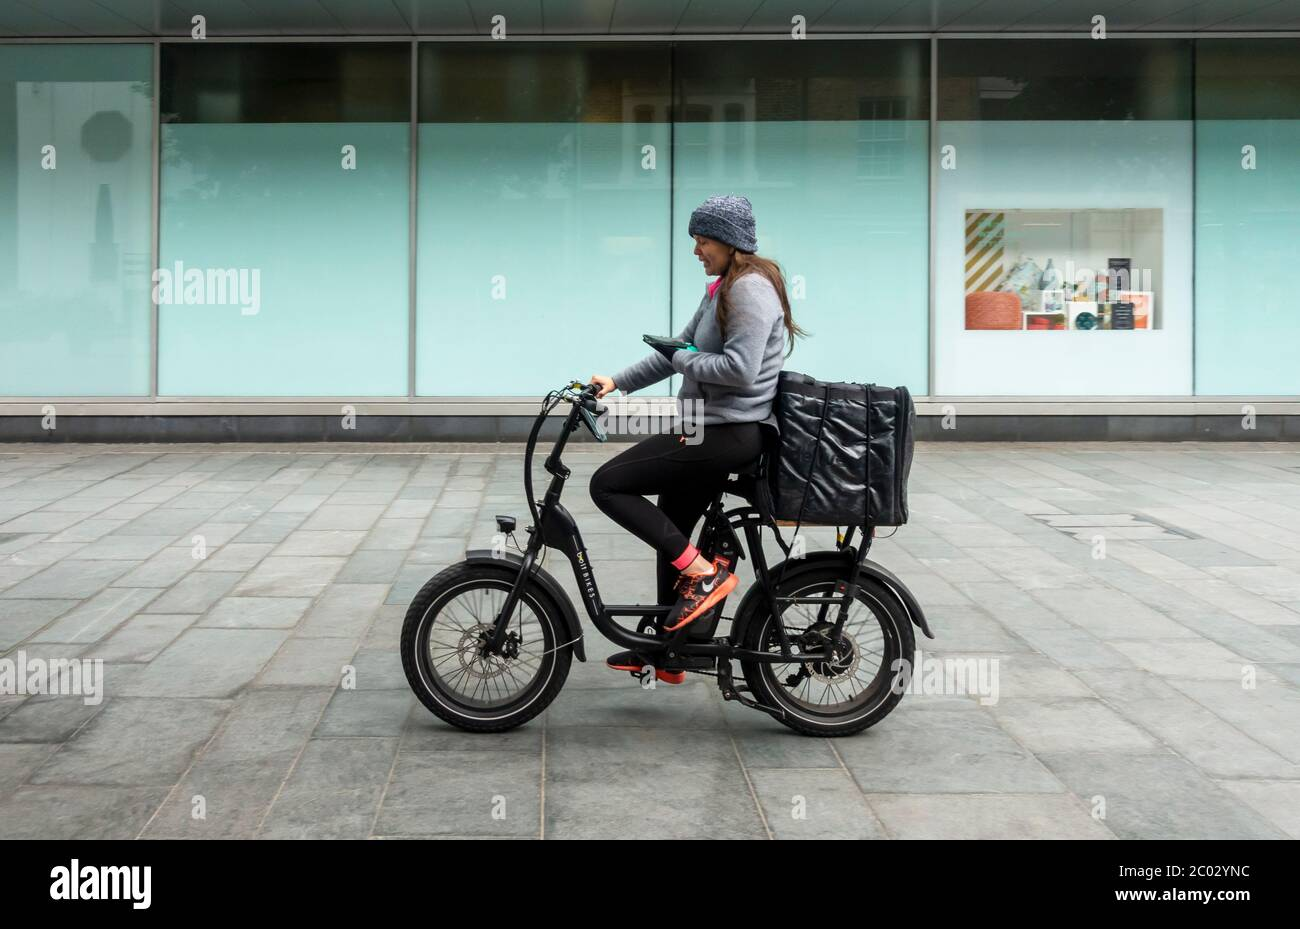 a-young-woman-doing-bicycle-food-deliver